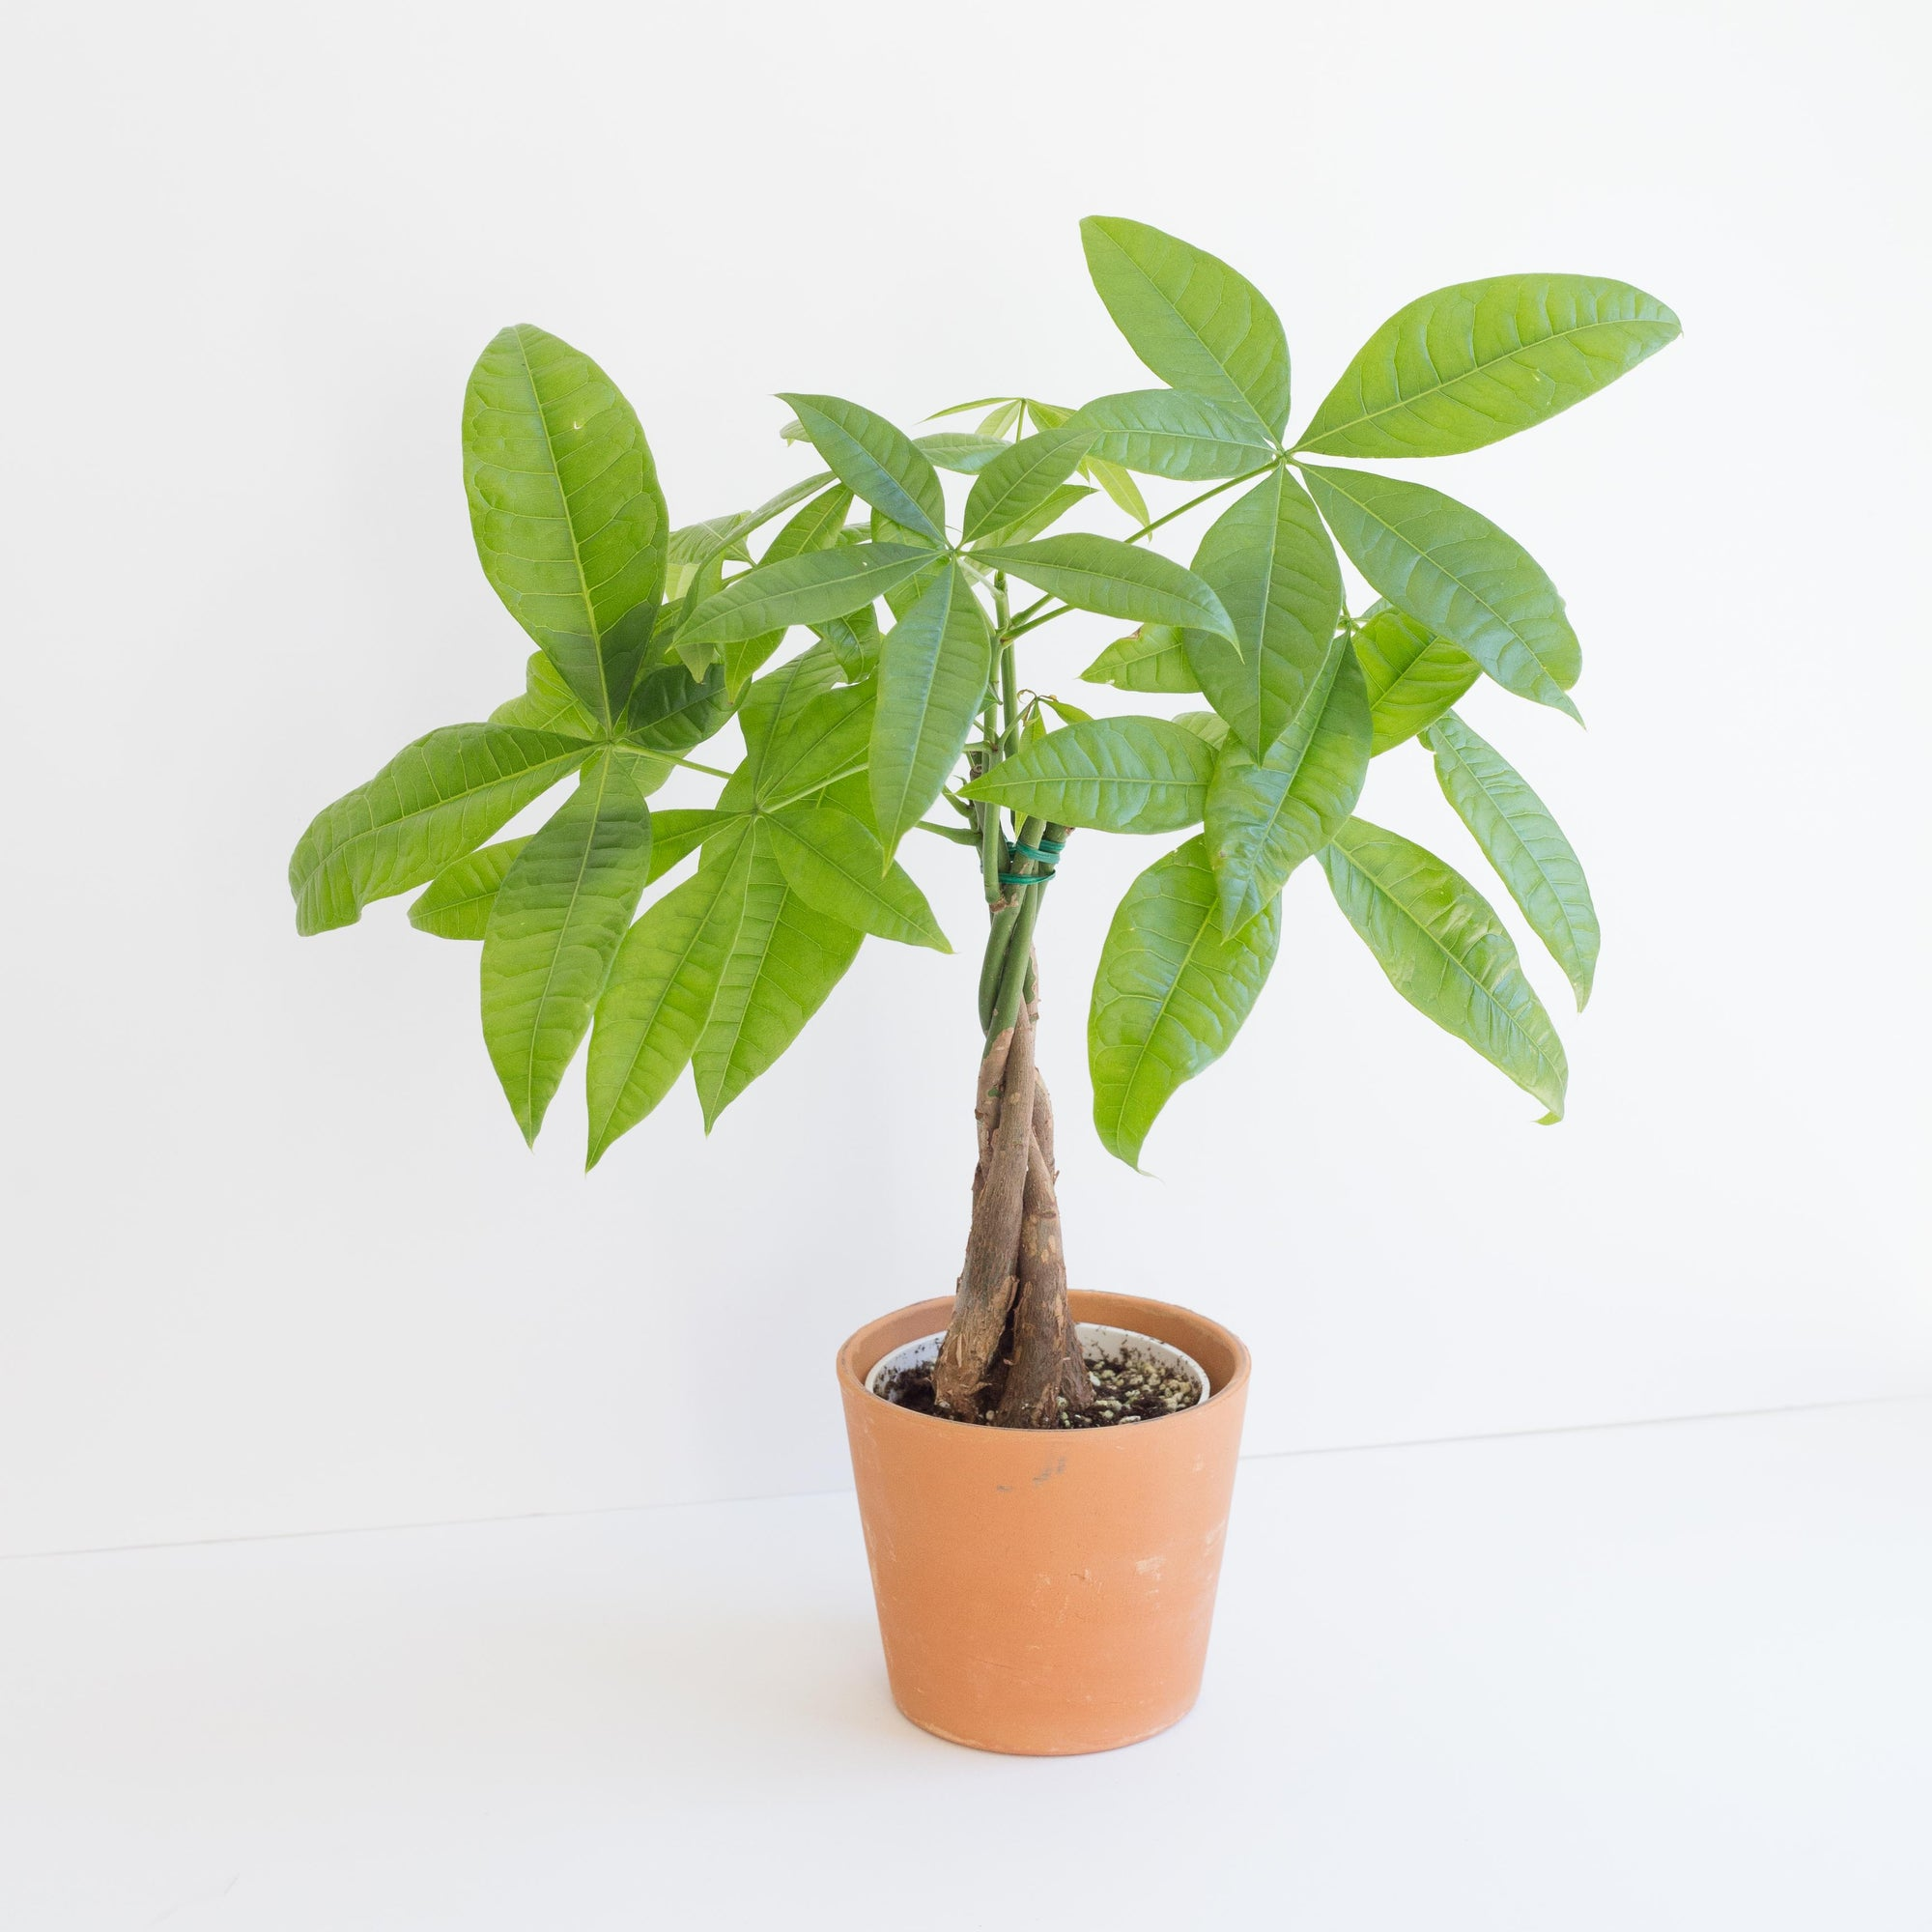 Braided Money Tree Plant Cheaper Than Retail Price Buy Clothing Accessories And Lifestyle Products For Women Men